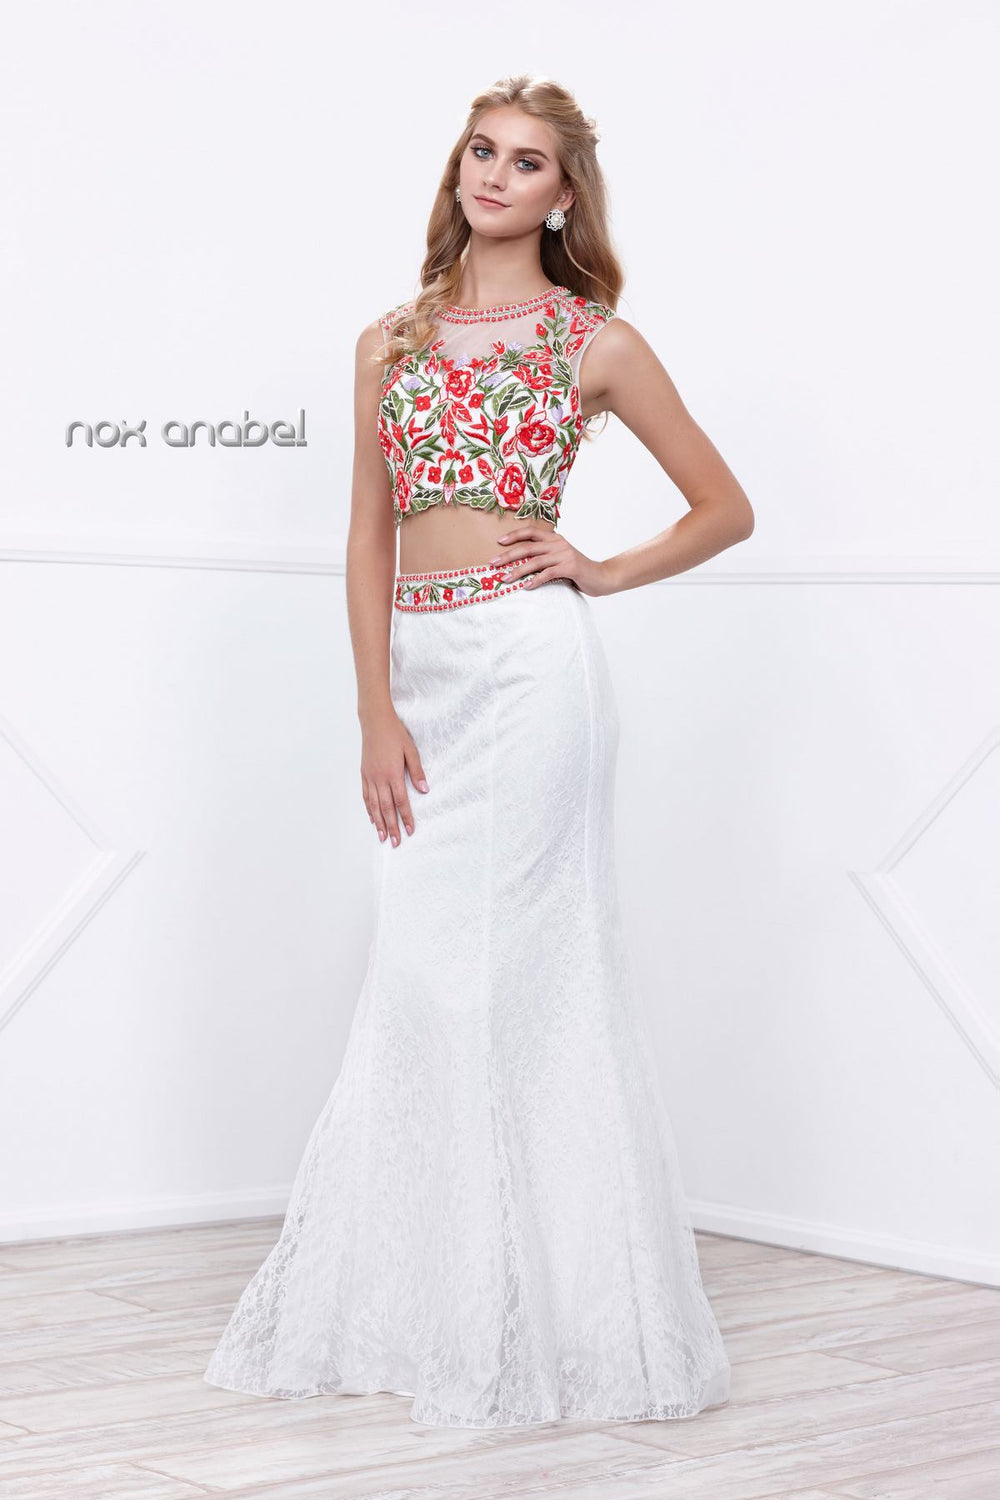 EXQUISITE EMBELLISHED HIGH NECK TWO-PIECE ILLUSION MERMAID DRESS 8373 BY NARIANNA